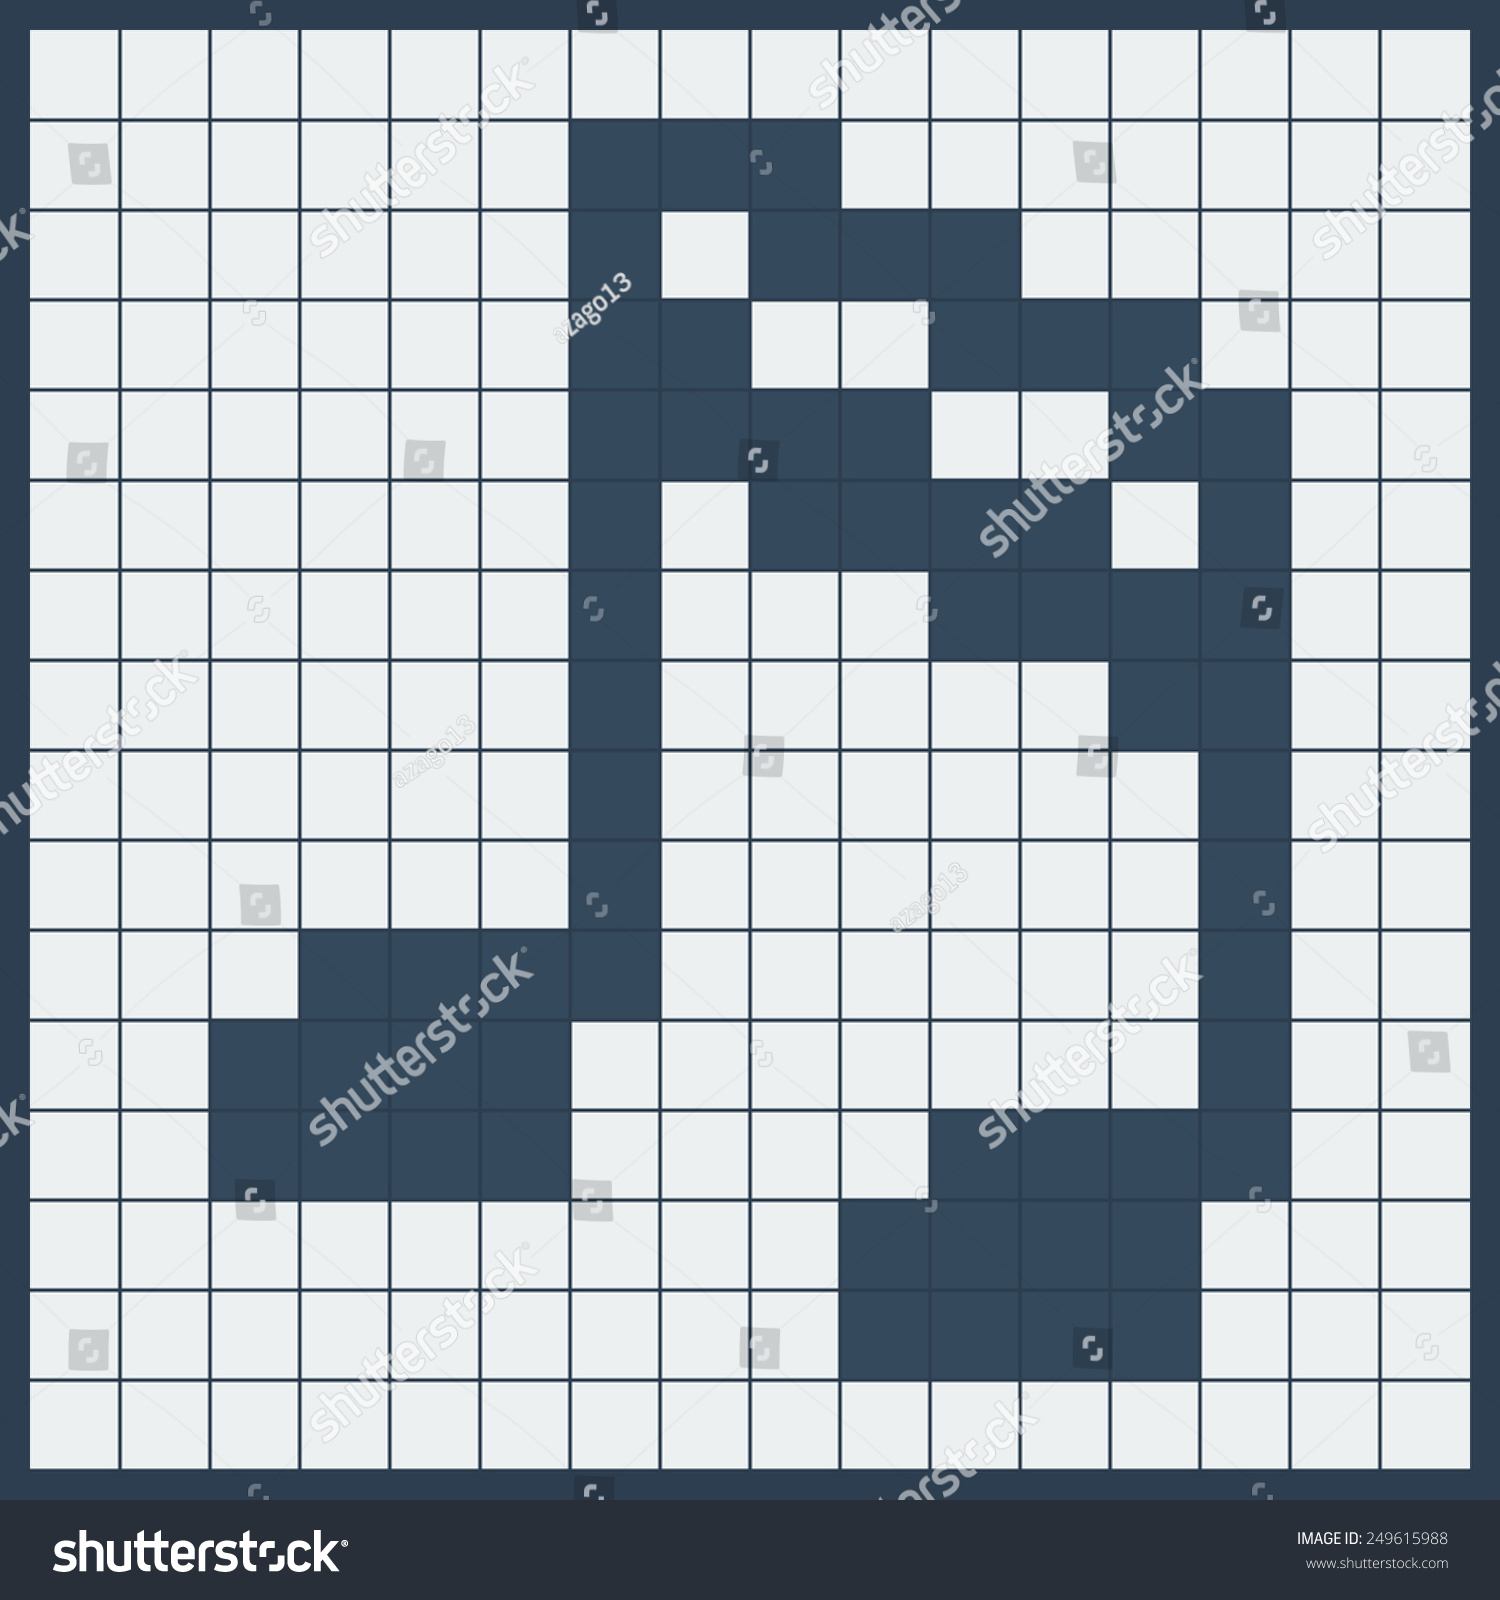 Musical symbol crossword images symbol and sign ideas music symbol note icon made squares stock vector 249615988 music symbol note icon made of squares buycottarizona